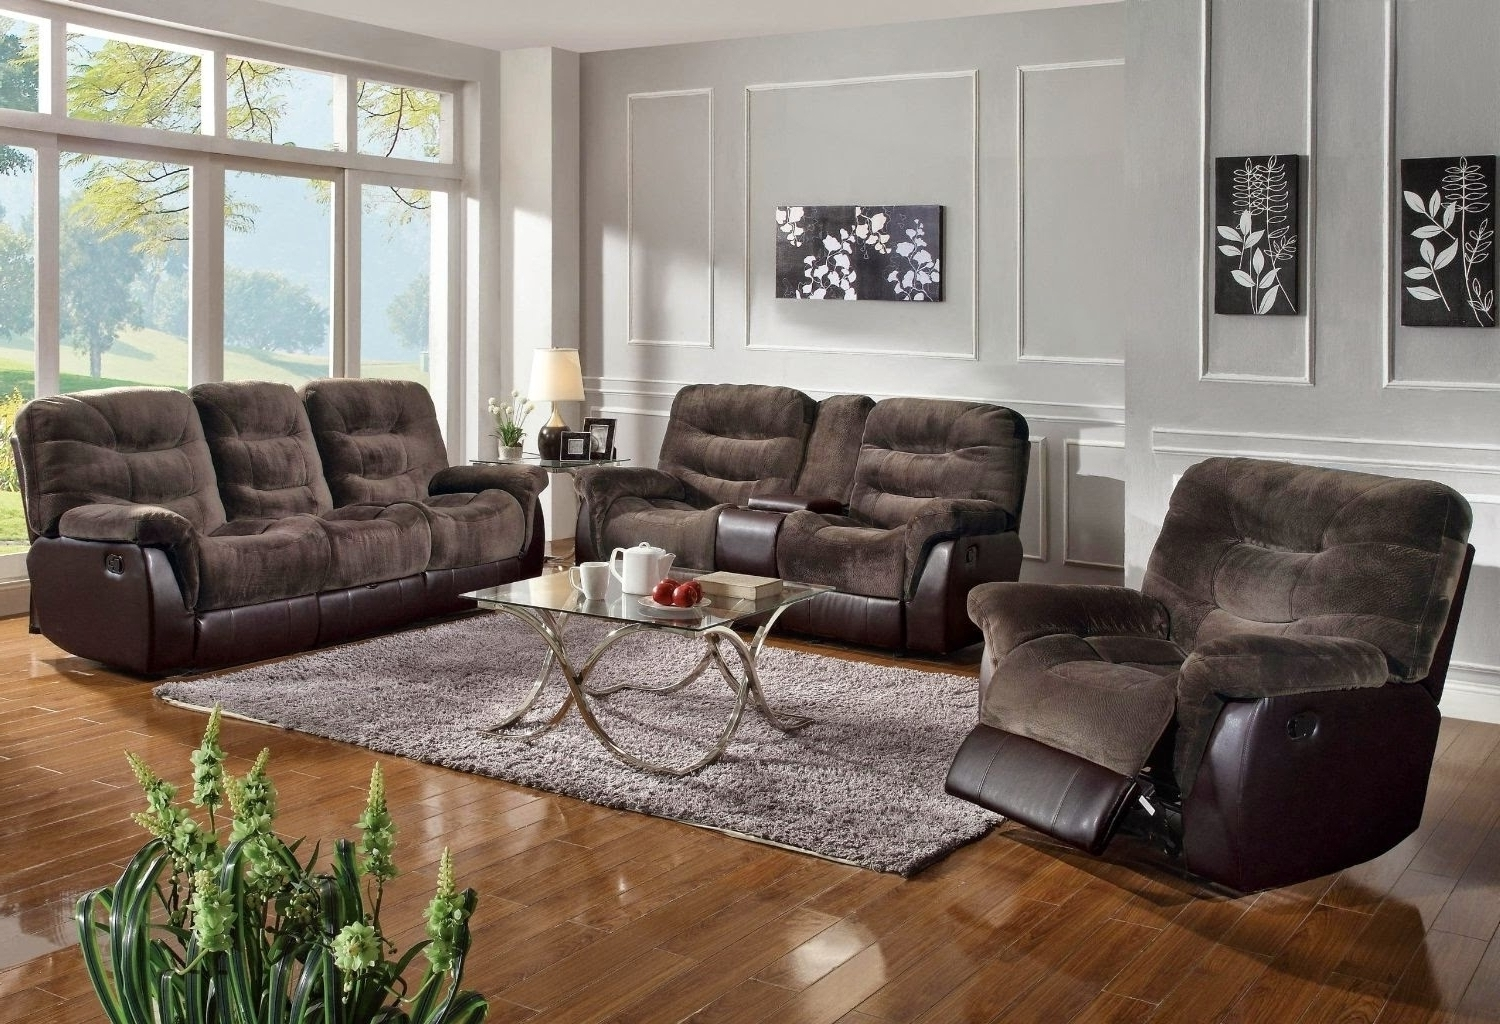 Fashionable Furniture Reclining Sectional Sofas For Small Spaces Reclining Throughout Sectional Sofas In Small Spaces (View 4 of 20)